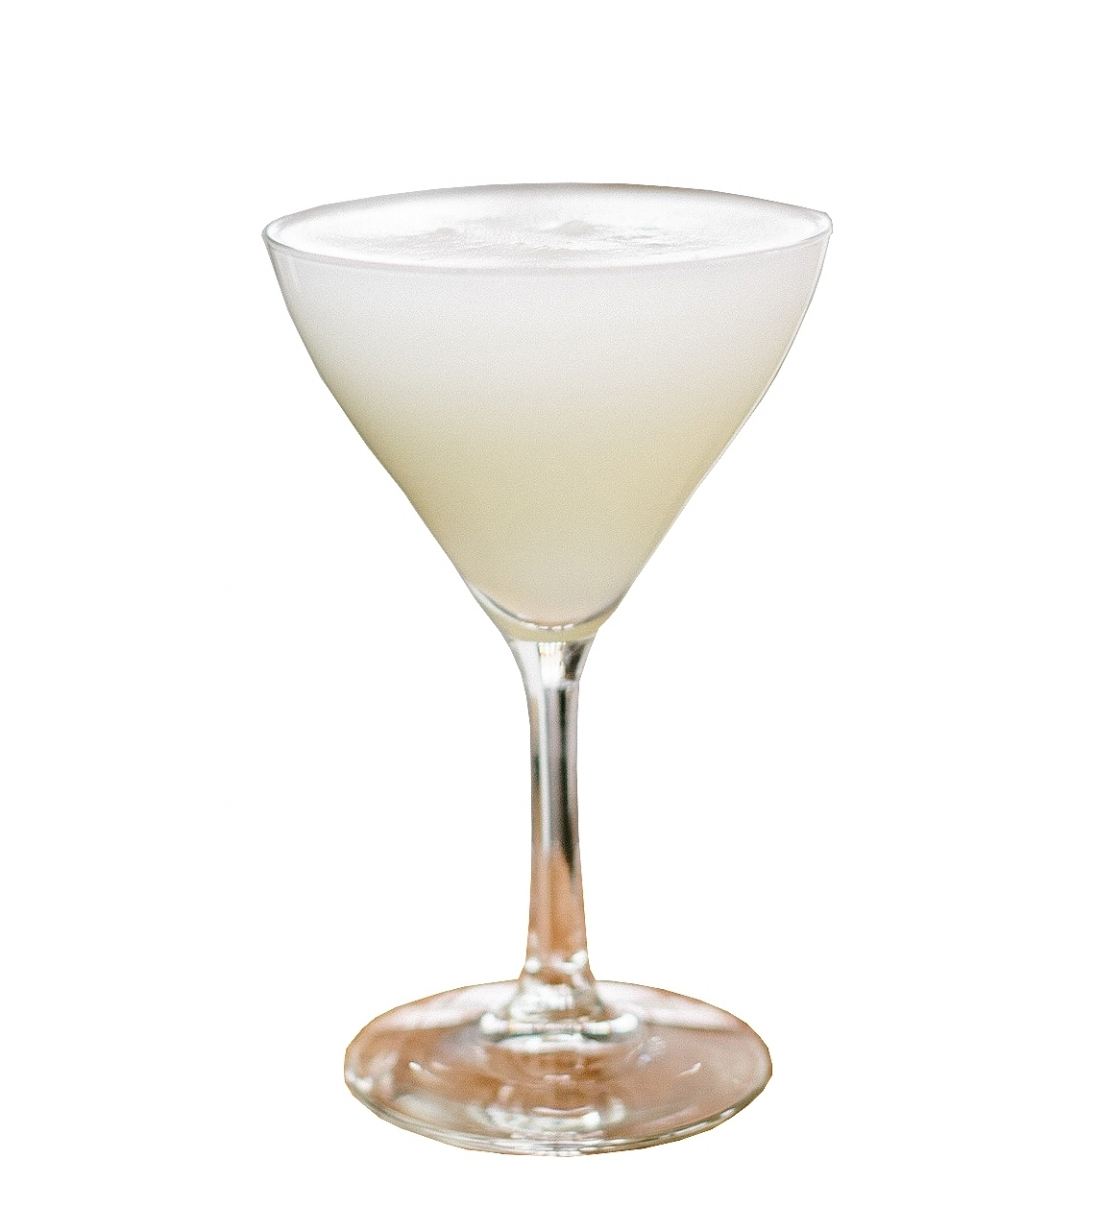 FIZZ  1 Egg White 15ml Rich Simple Syrup* 30ml Fresh Lemon Juice 60ml Norseman Gin  Shake with 3 good ice cubes until you can't hear them anymore and strain into a glass.  *Rich Simple Syrup: simmer two parts sugar to one part water until clear. Be careful not to simmer too long or it will crystallize